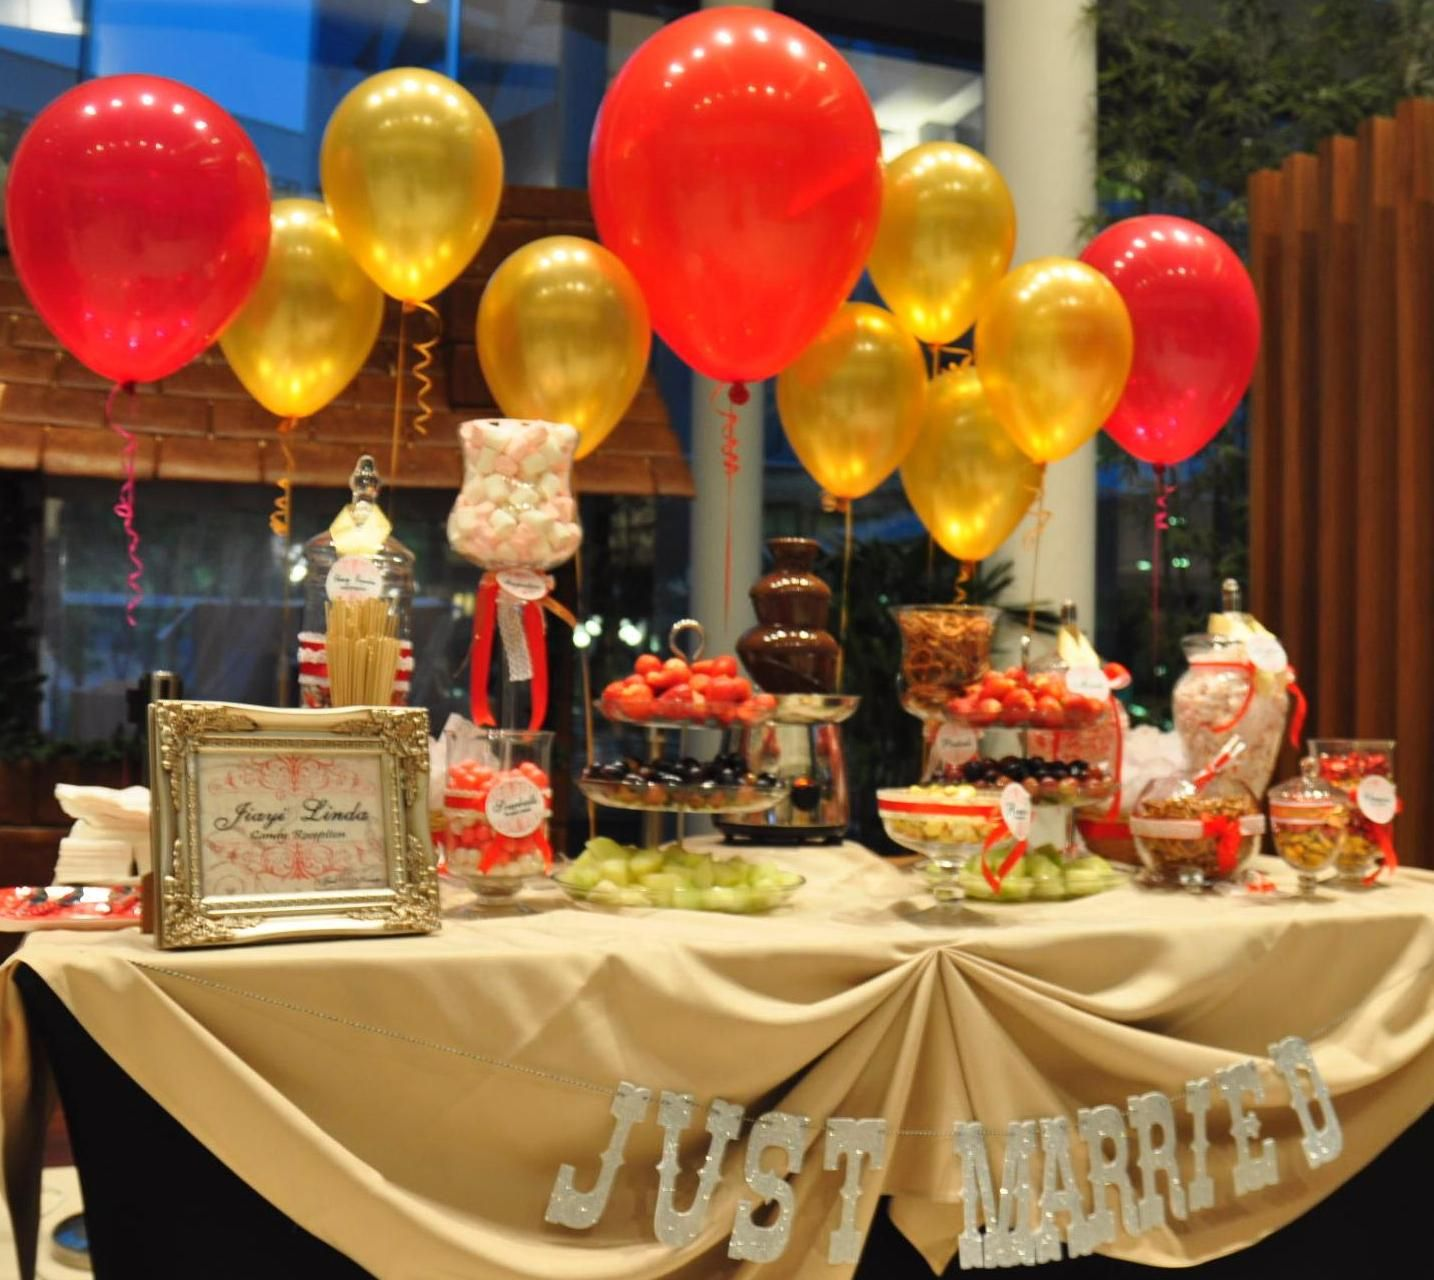 Elegant buffet table decoration pictures - 9 Incredibly Awesome Ways To Add Balloons To An Indian Wedding Decor Buffet Table